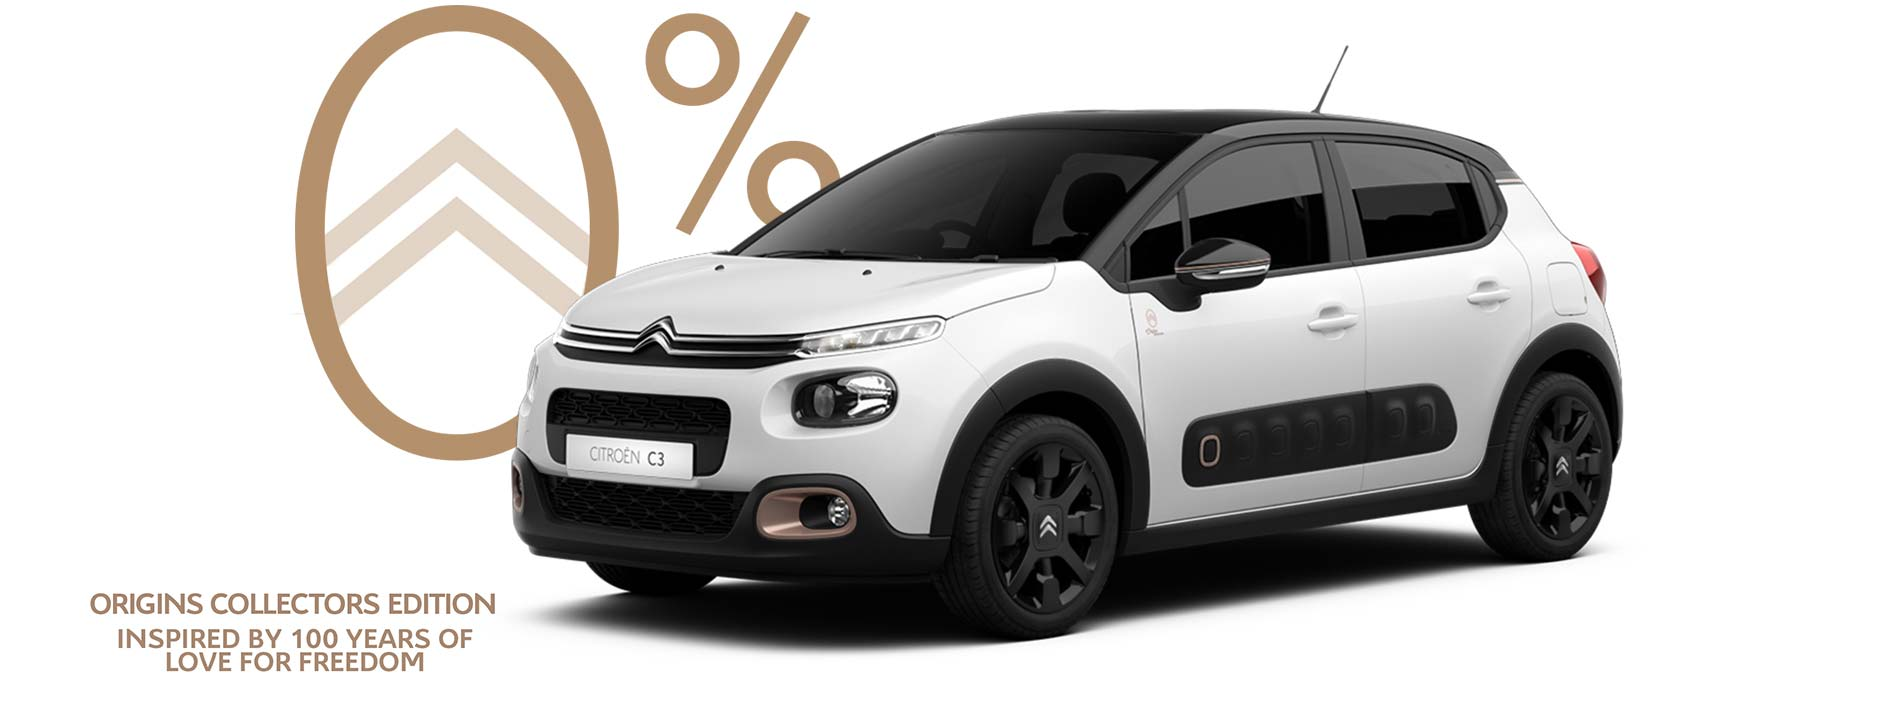 citroen-c3-origins-collectiors-edition-zero-percent-finance-m-sli